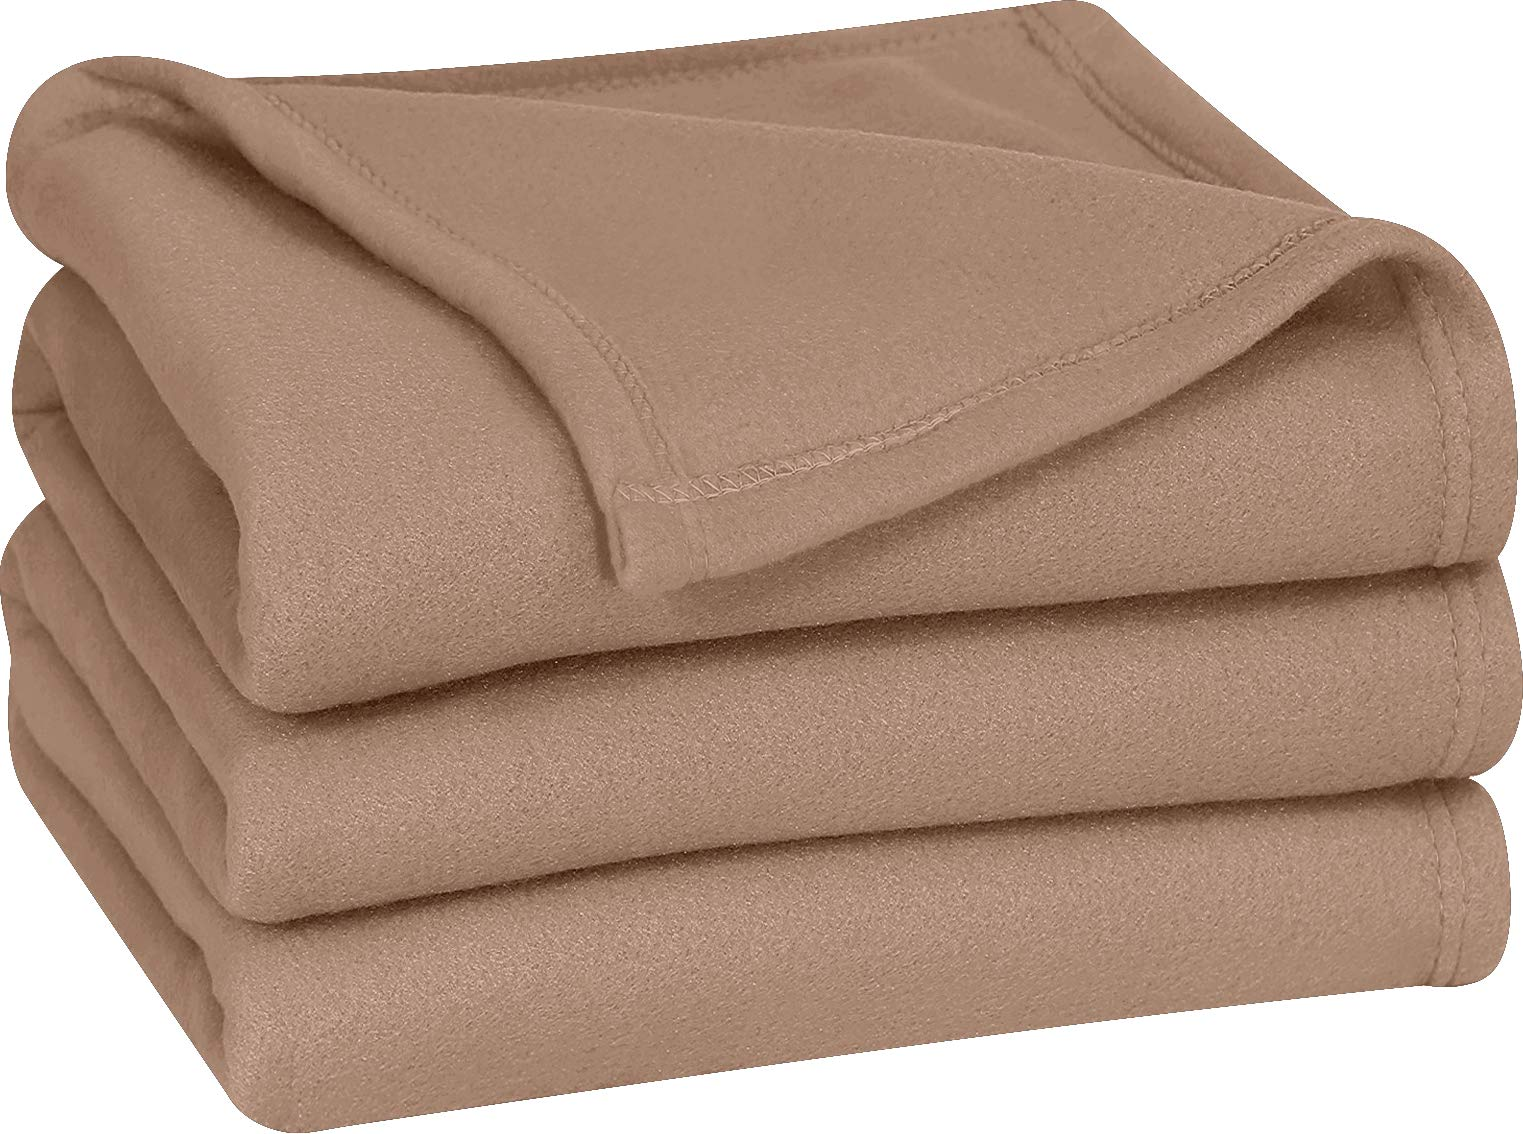 Utopia Bedding Polar Fleece Blanket (Twin, Tan) - Extra Soft Brush Fabric - Super Warm Bed Blanket - Lightweight Couch Blanket - Easy Care